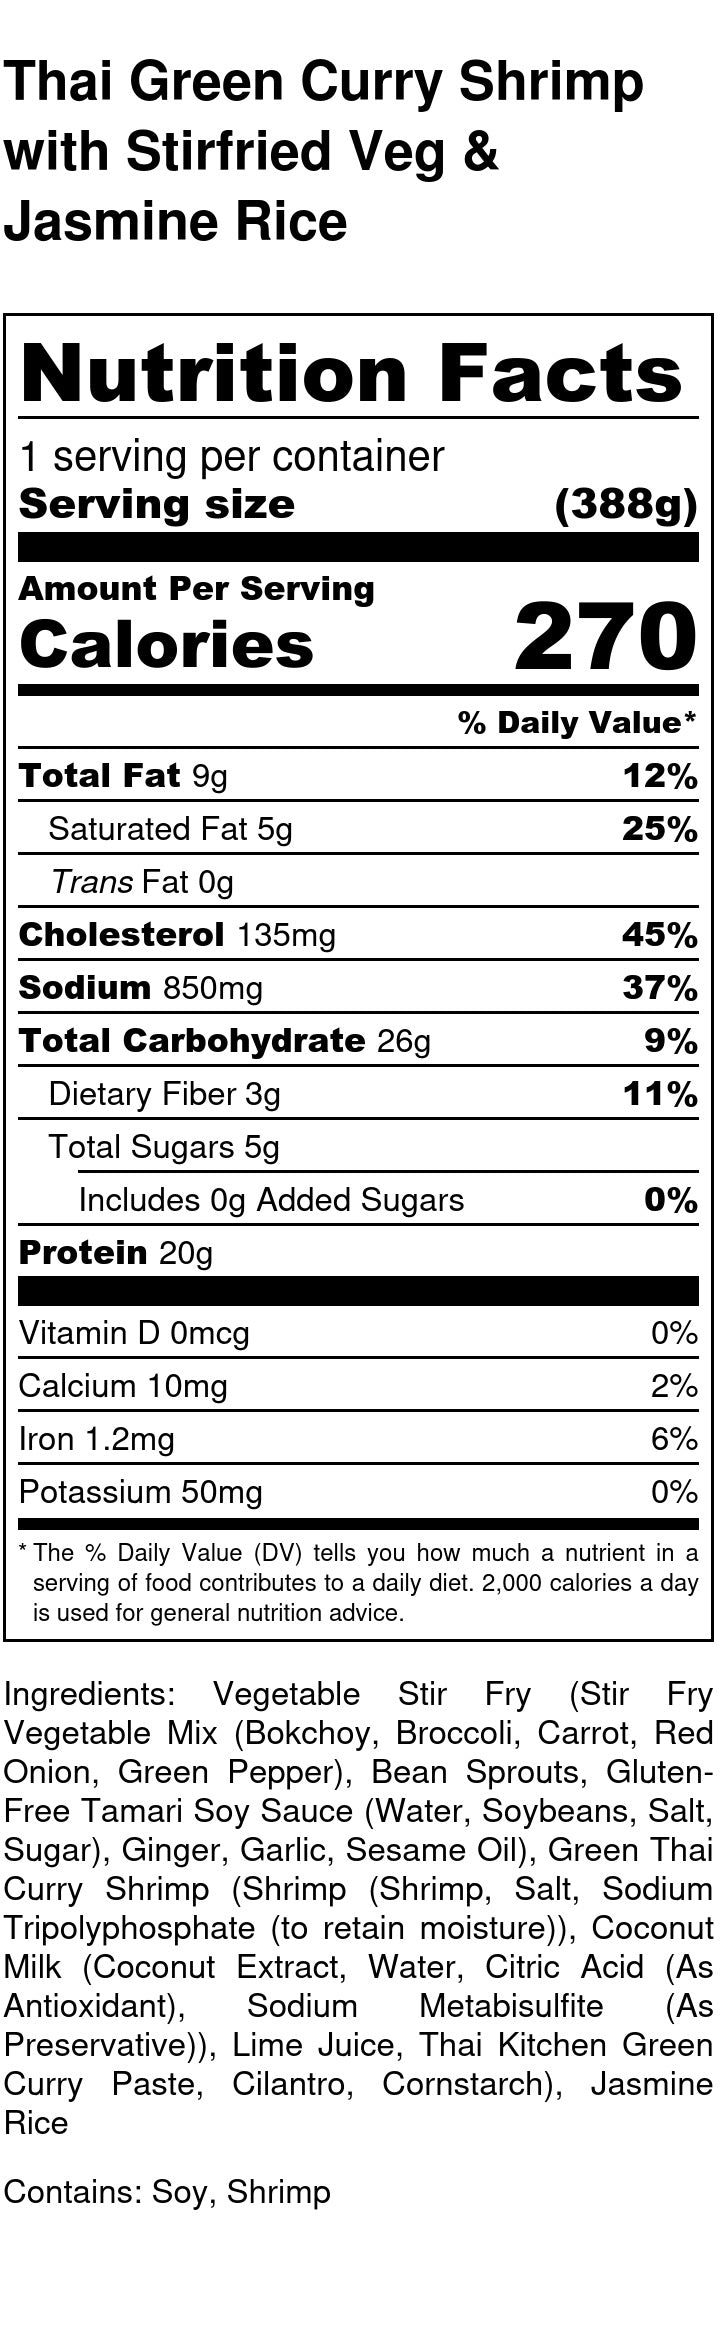 Thai Green Curry Shrimp Nutrition Facts